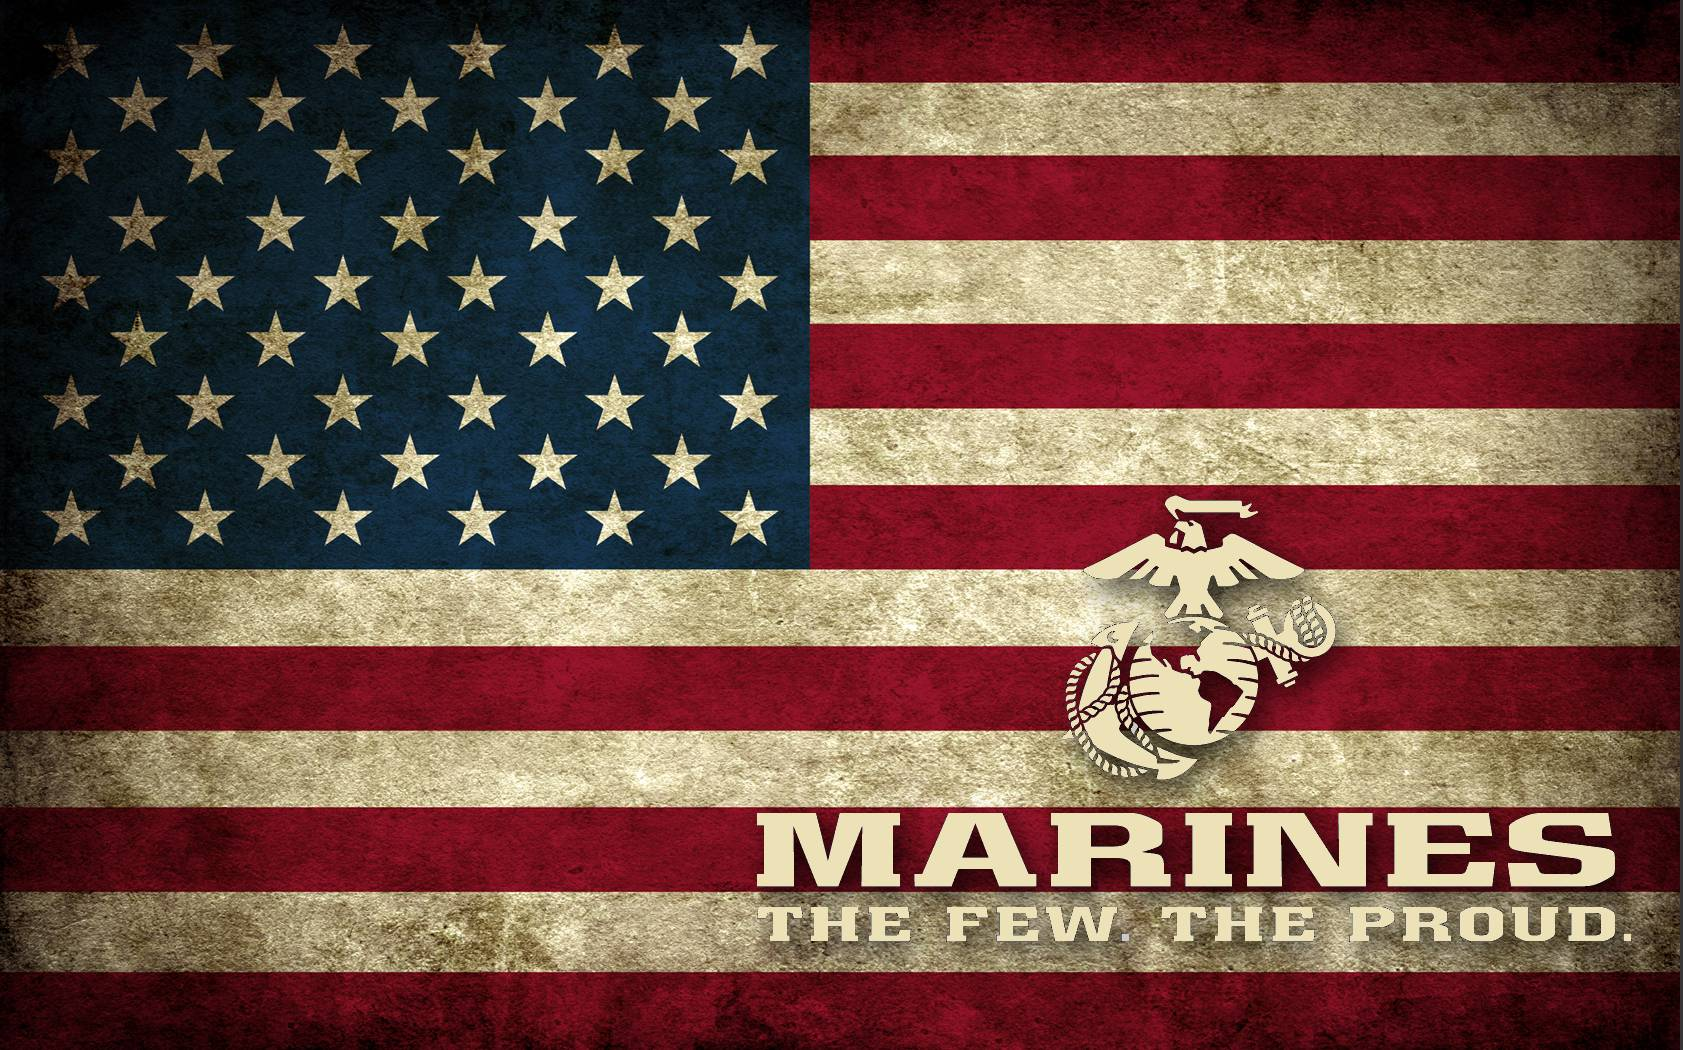 Usmc Wallpapers 1920x1080 Image & Pictures